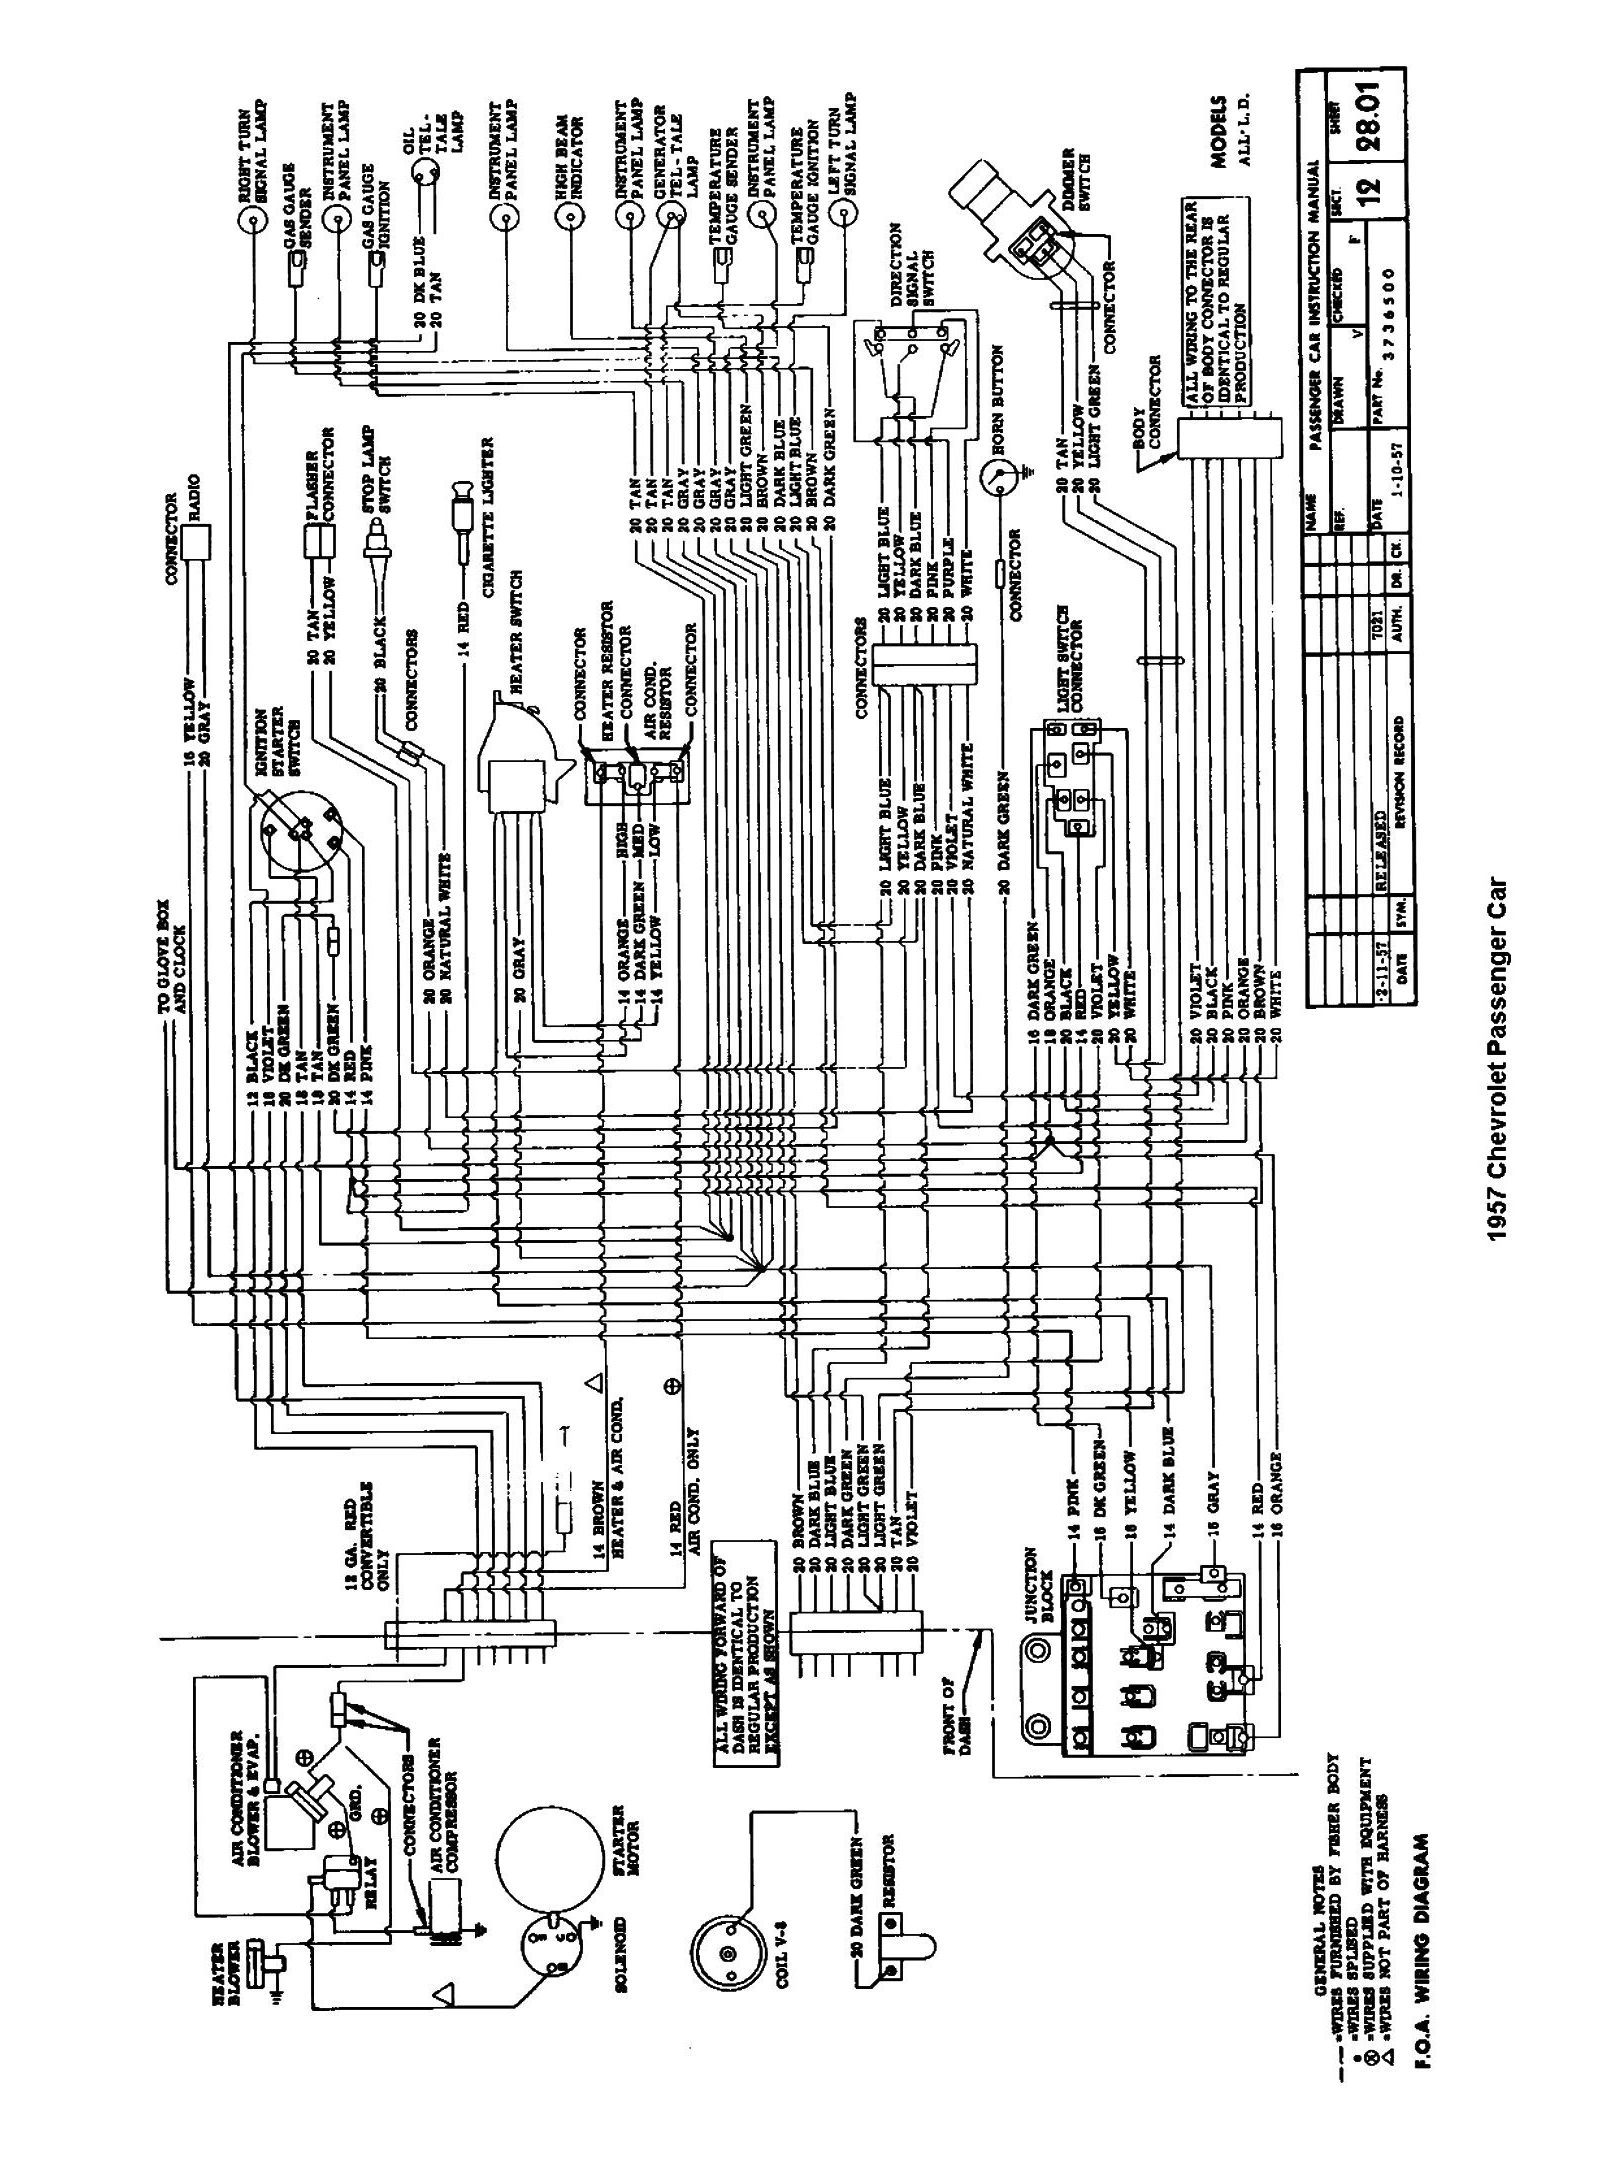 1957 ford station wagon wiring schematic 1956 bel air heater wiring schematic | wiring library 1991 ford club wagon wiring diagram